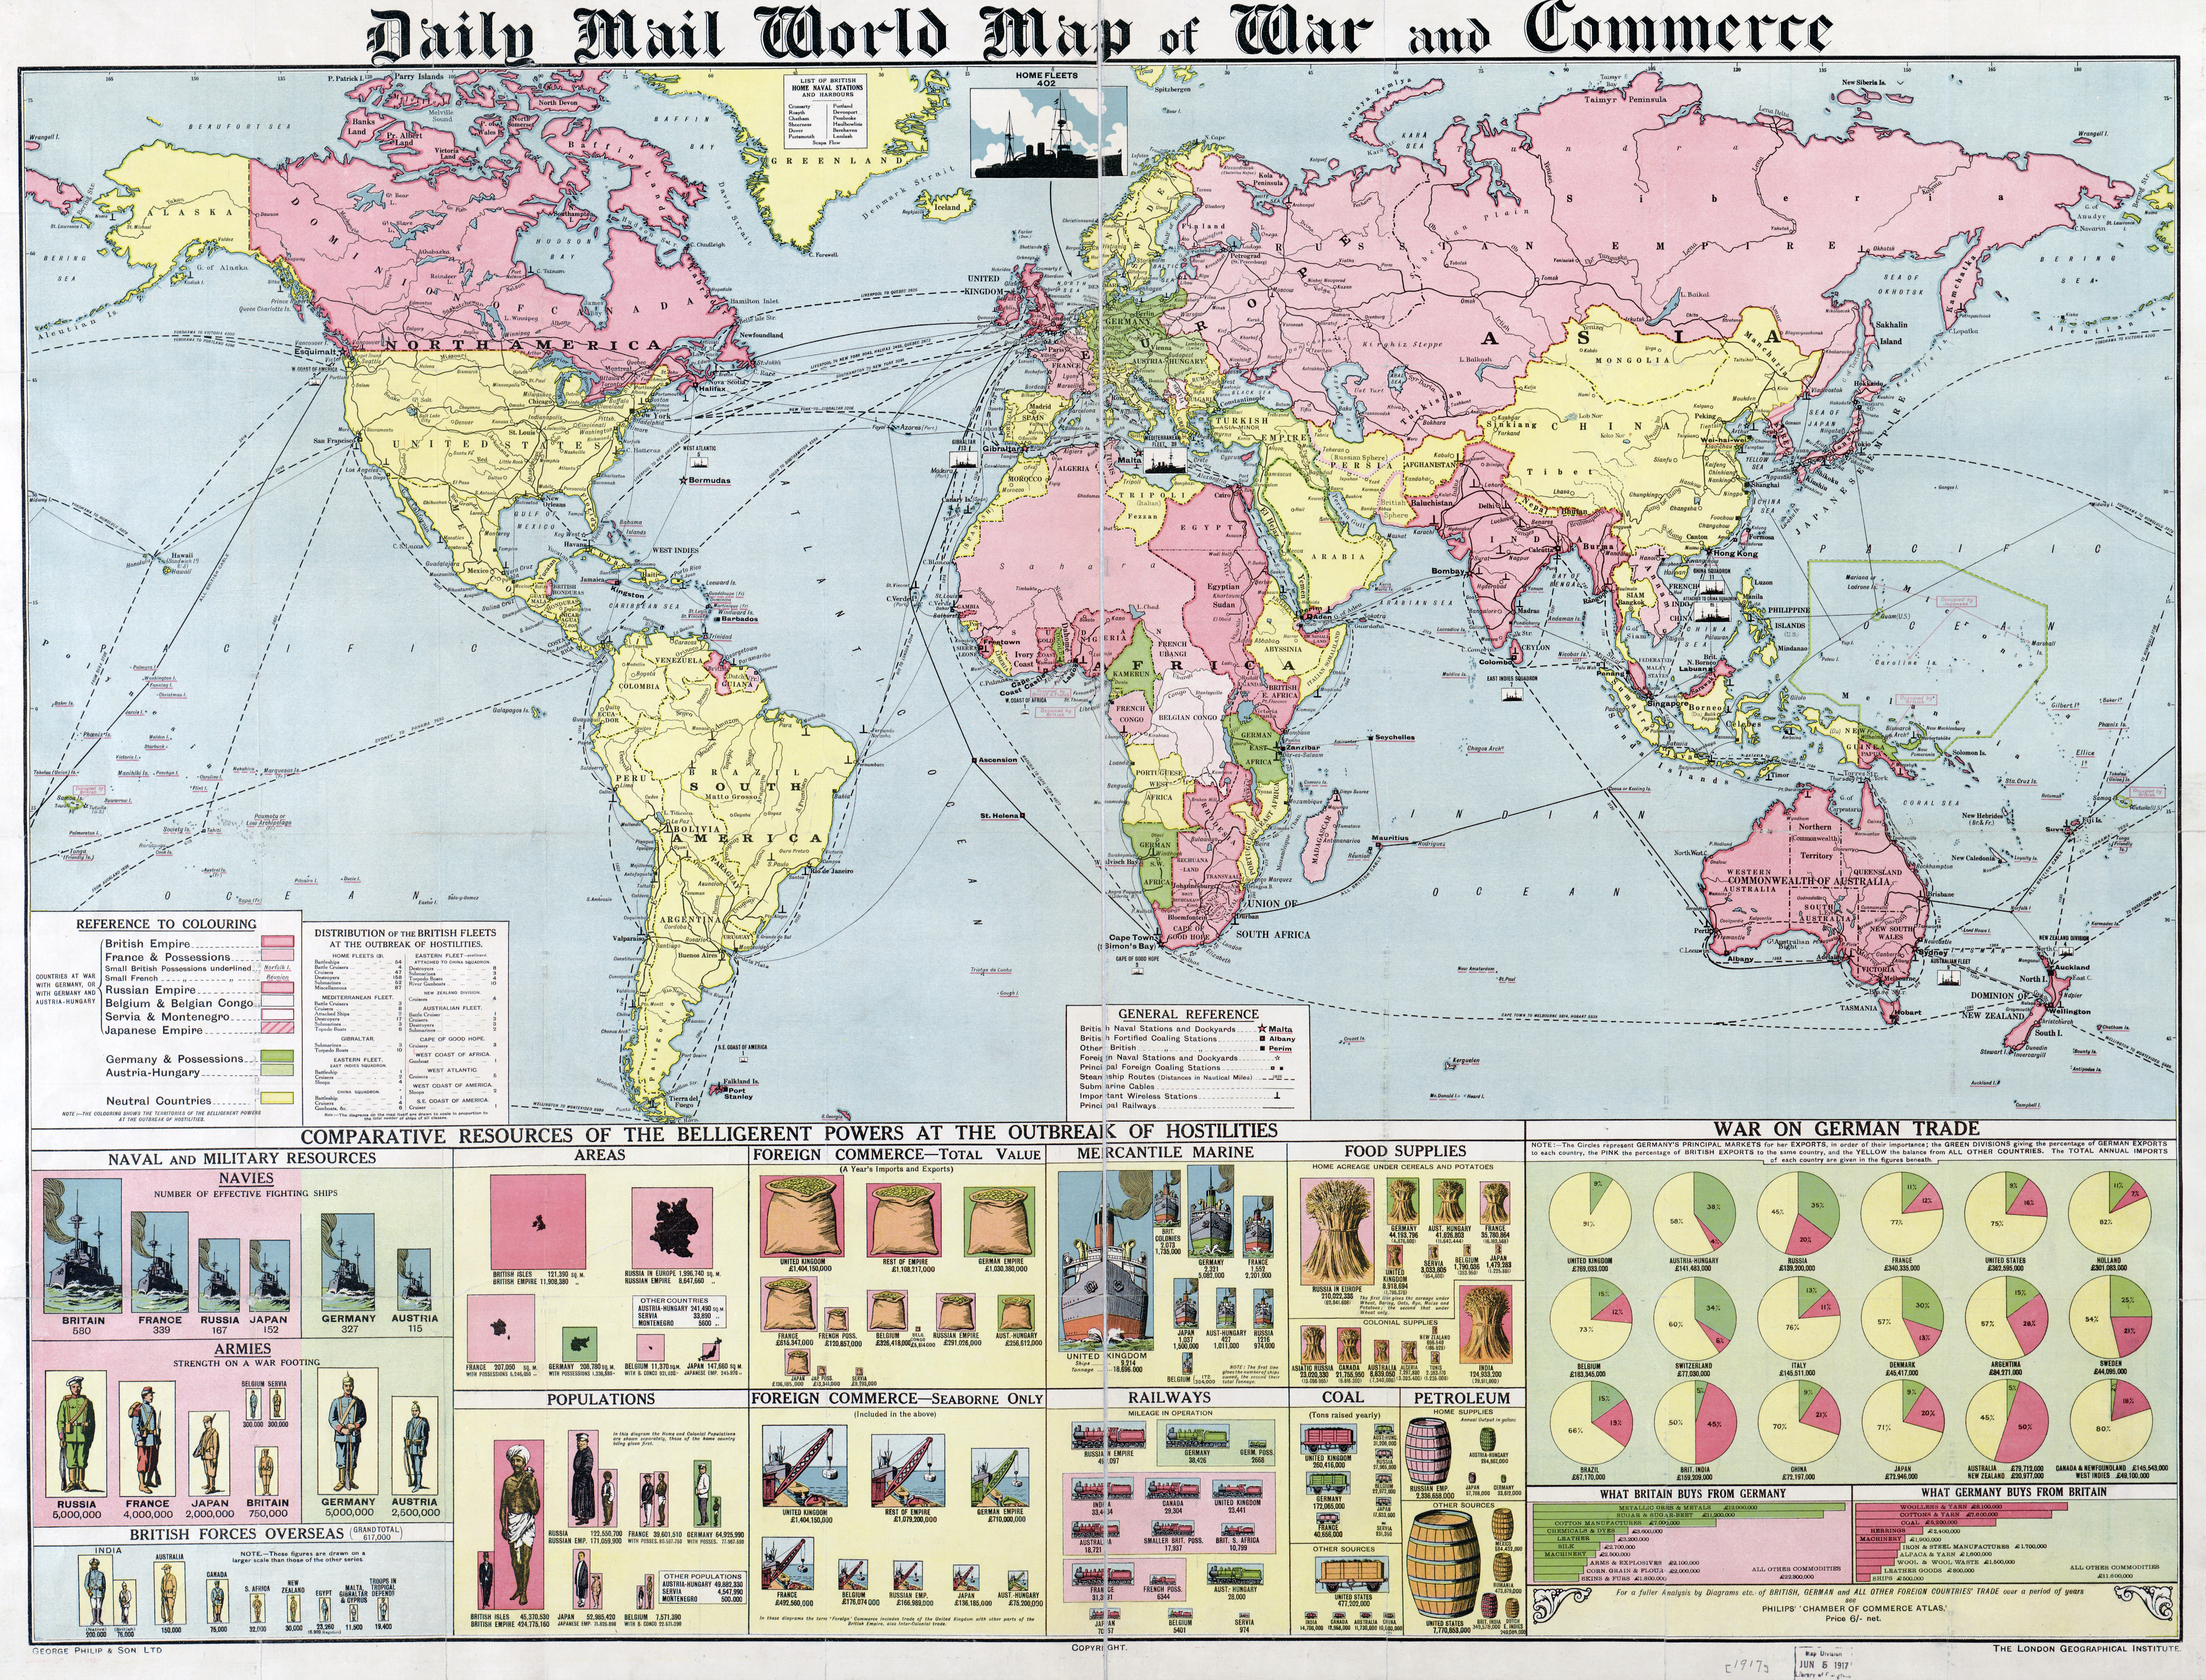 Large scale old daily mail world map of war and commerce 1917 large scale old daily mail world map of war and commerce 1917 gumiabroncs Gallery